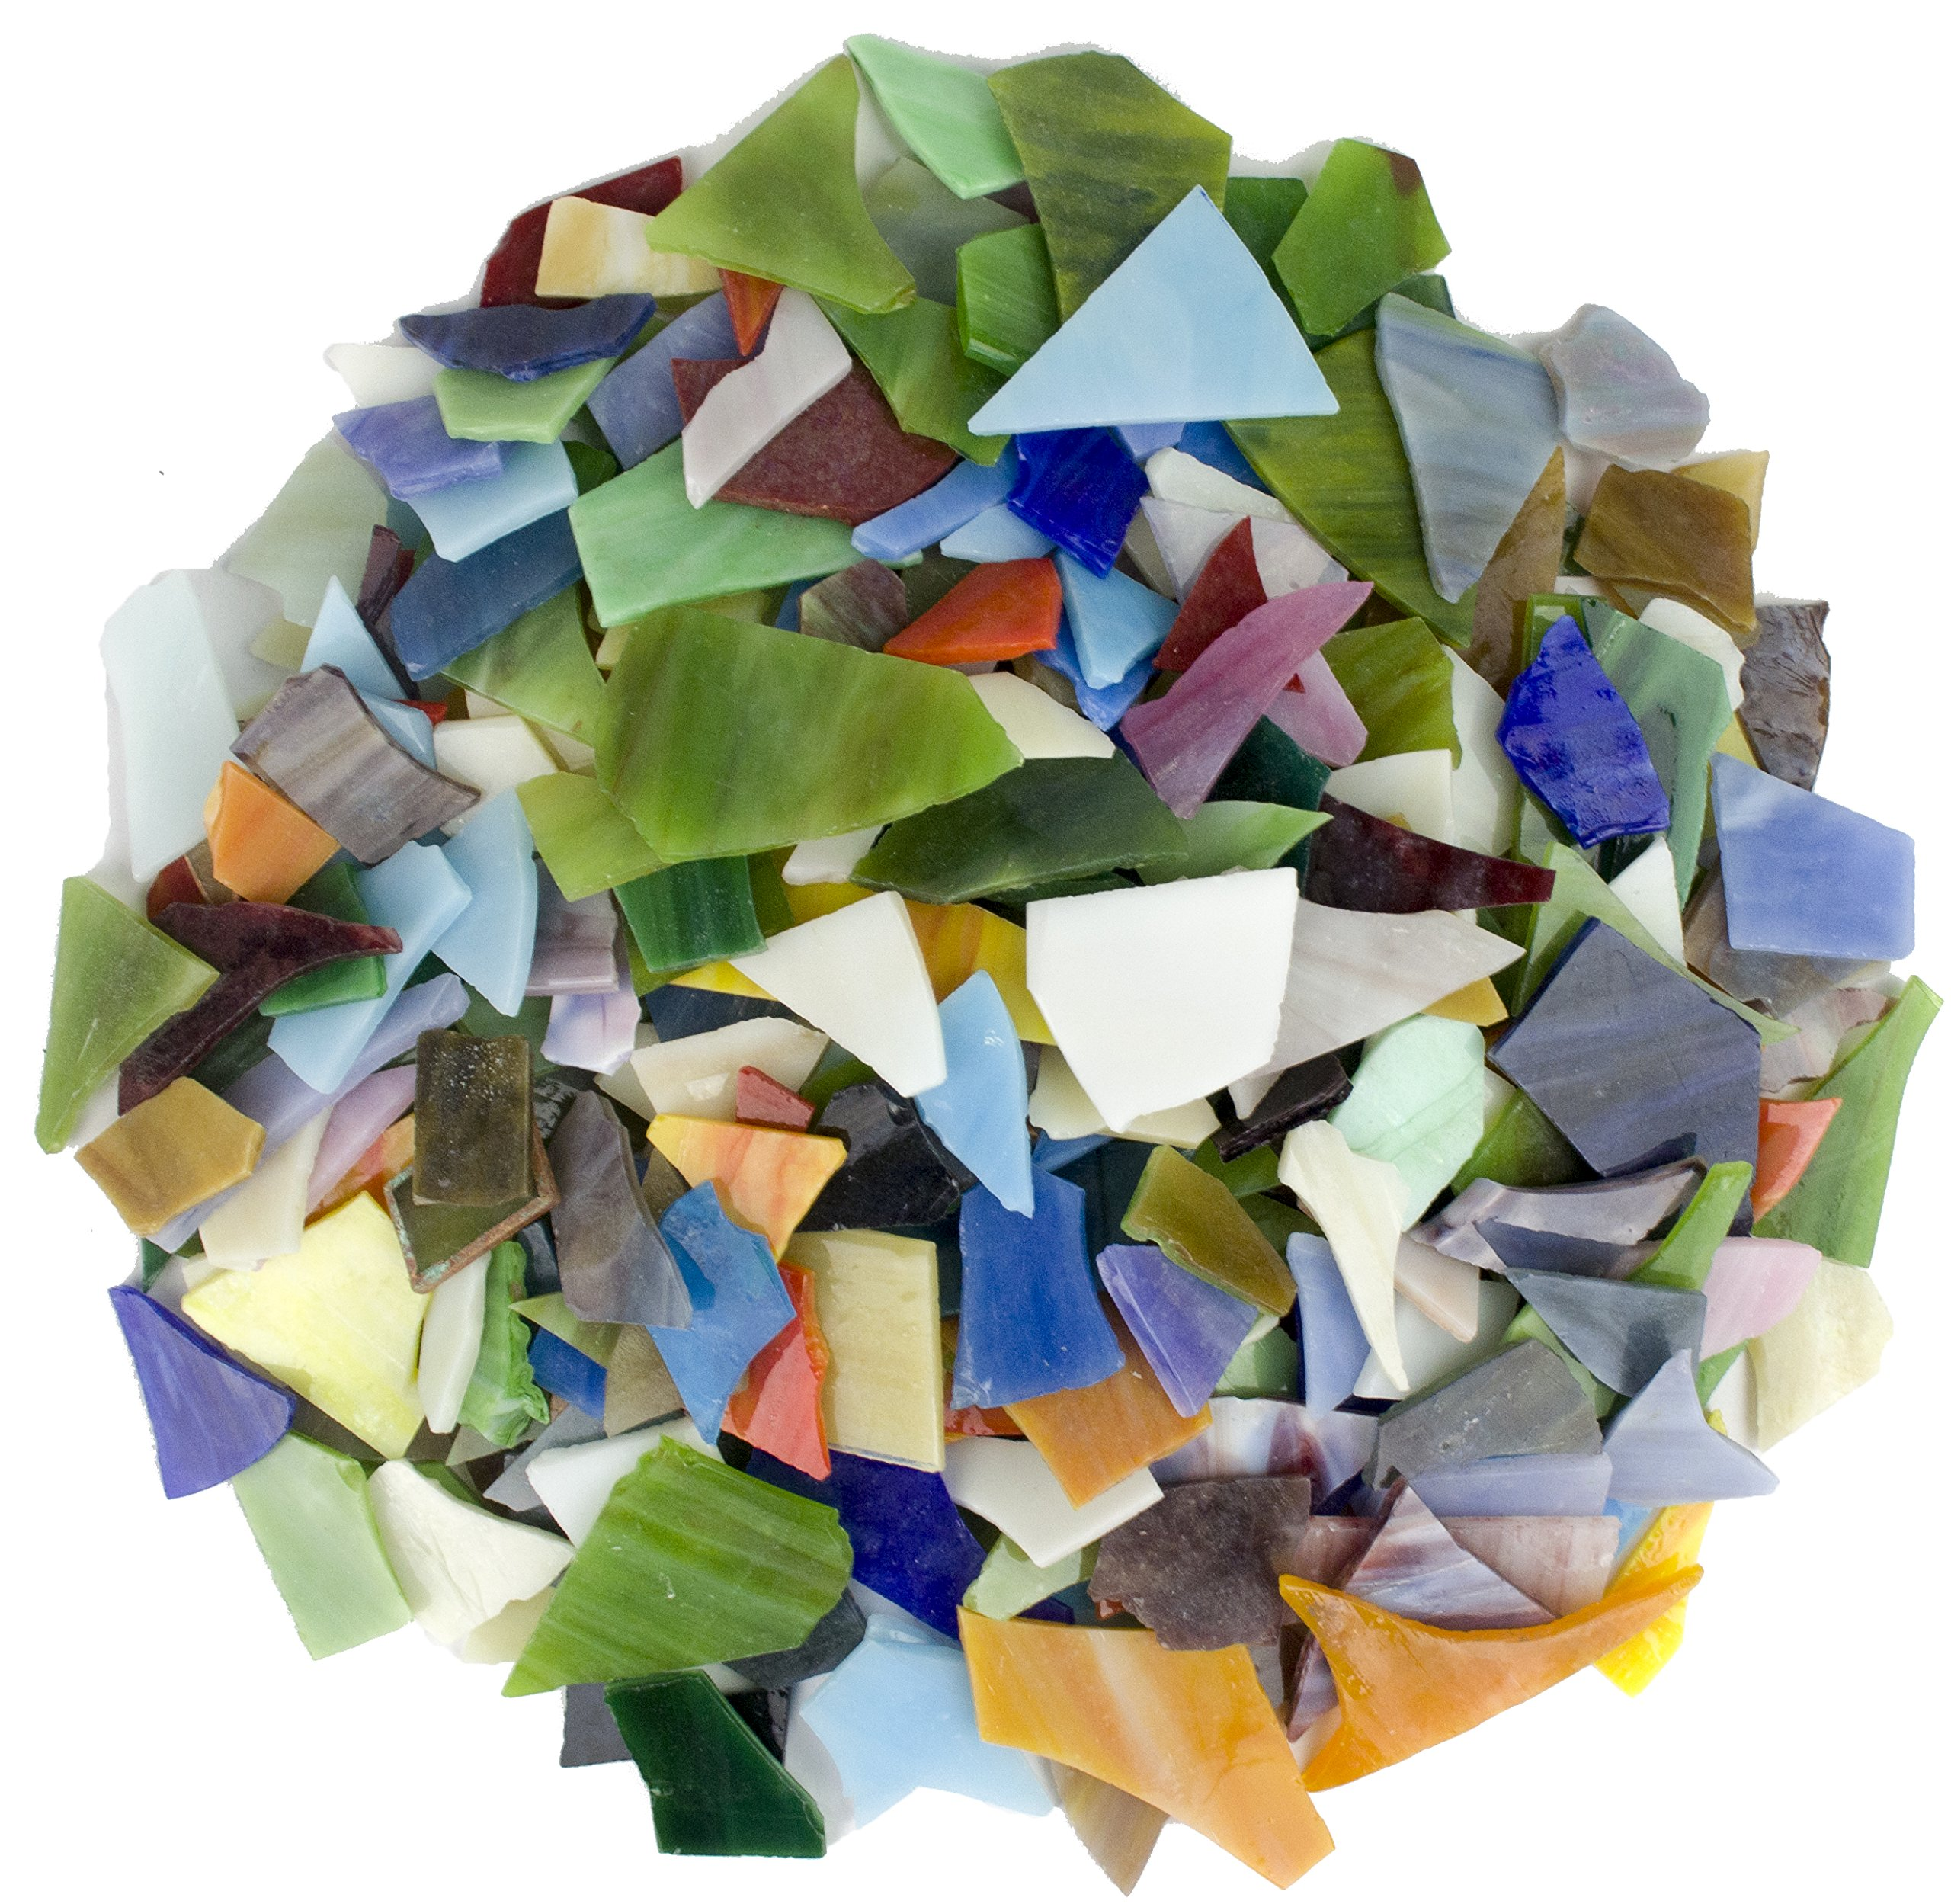 Glass Mosaics Pieces Bright Stained Glass, Assorted Colors and Irregular Shapes, 35 ounce Value Pack